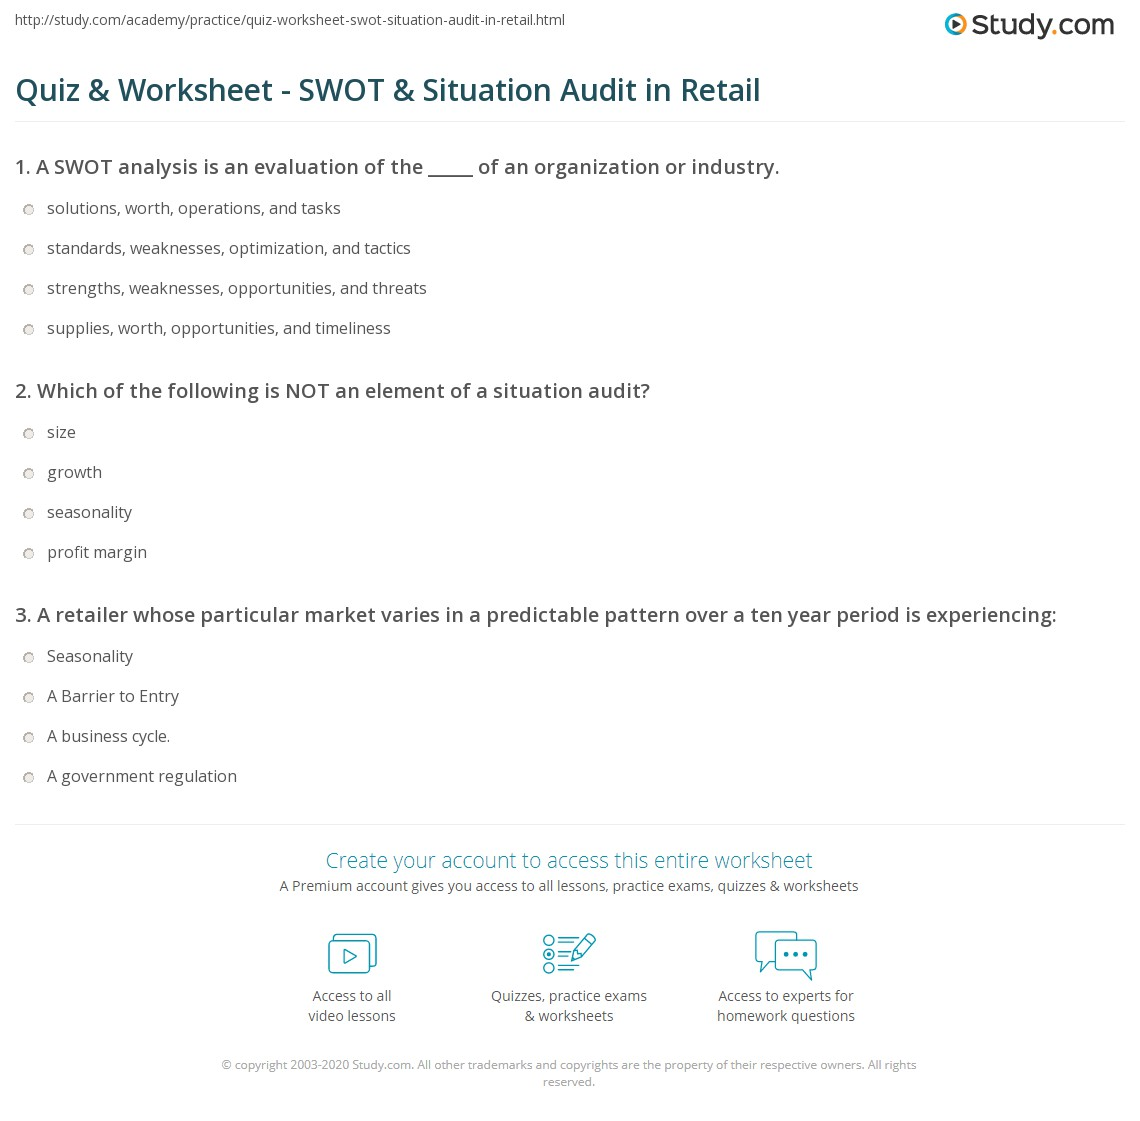 SWOT & Situation Audit In Retail